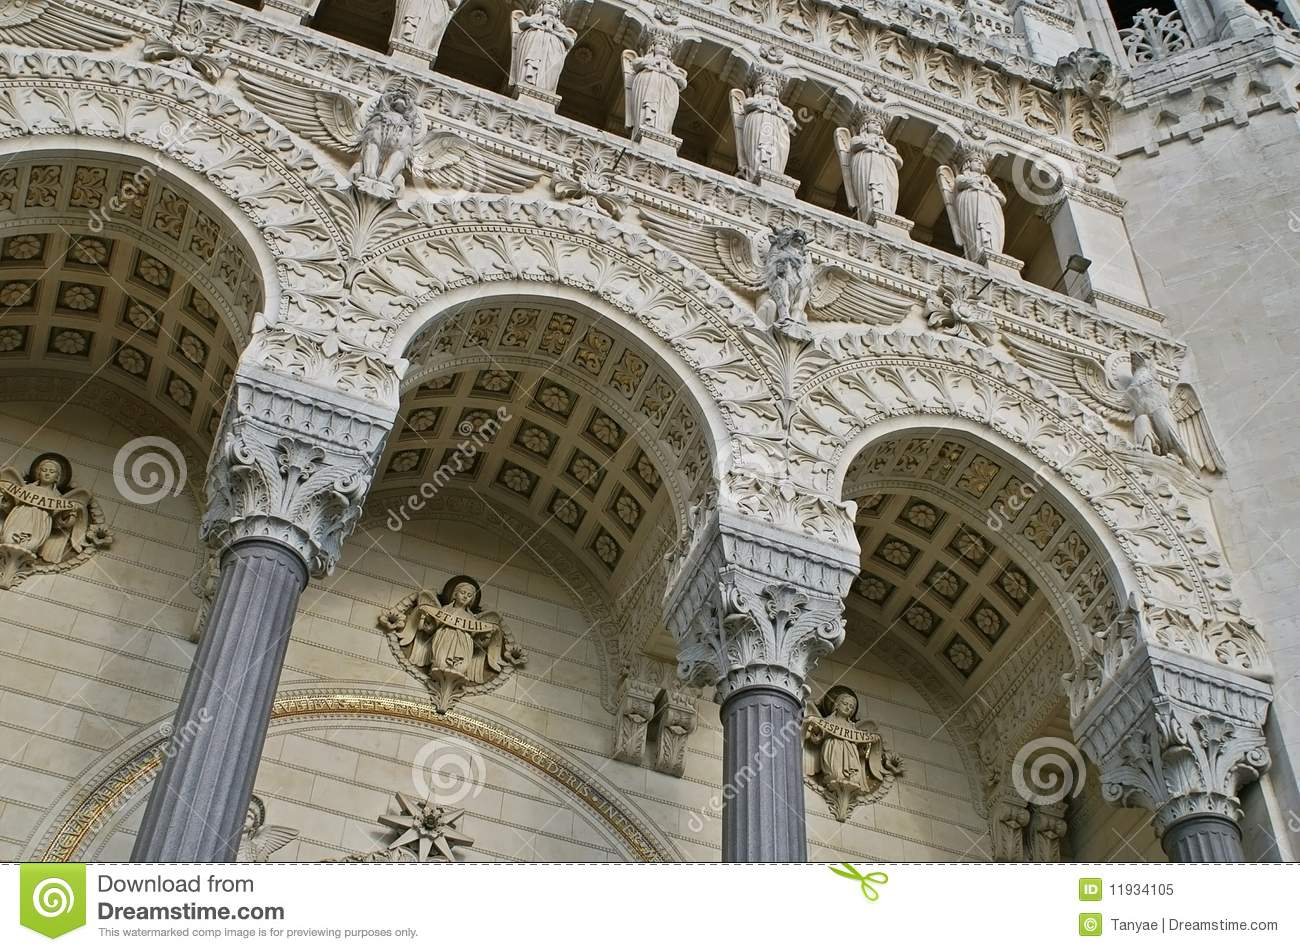 Awesome medieval architecture of lyon cathedral royalty for Z architecture lyon